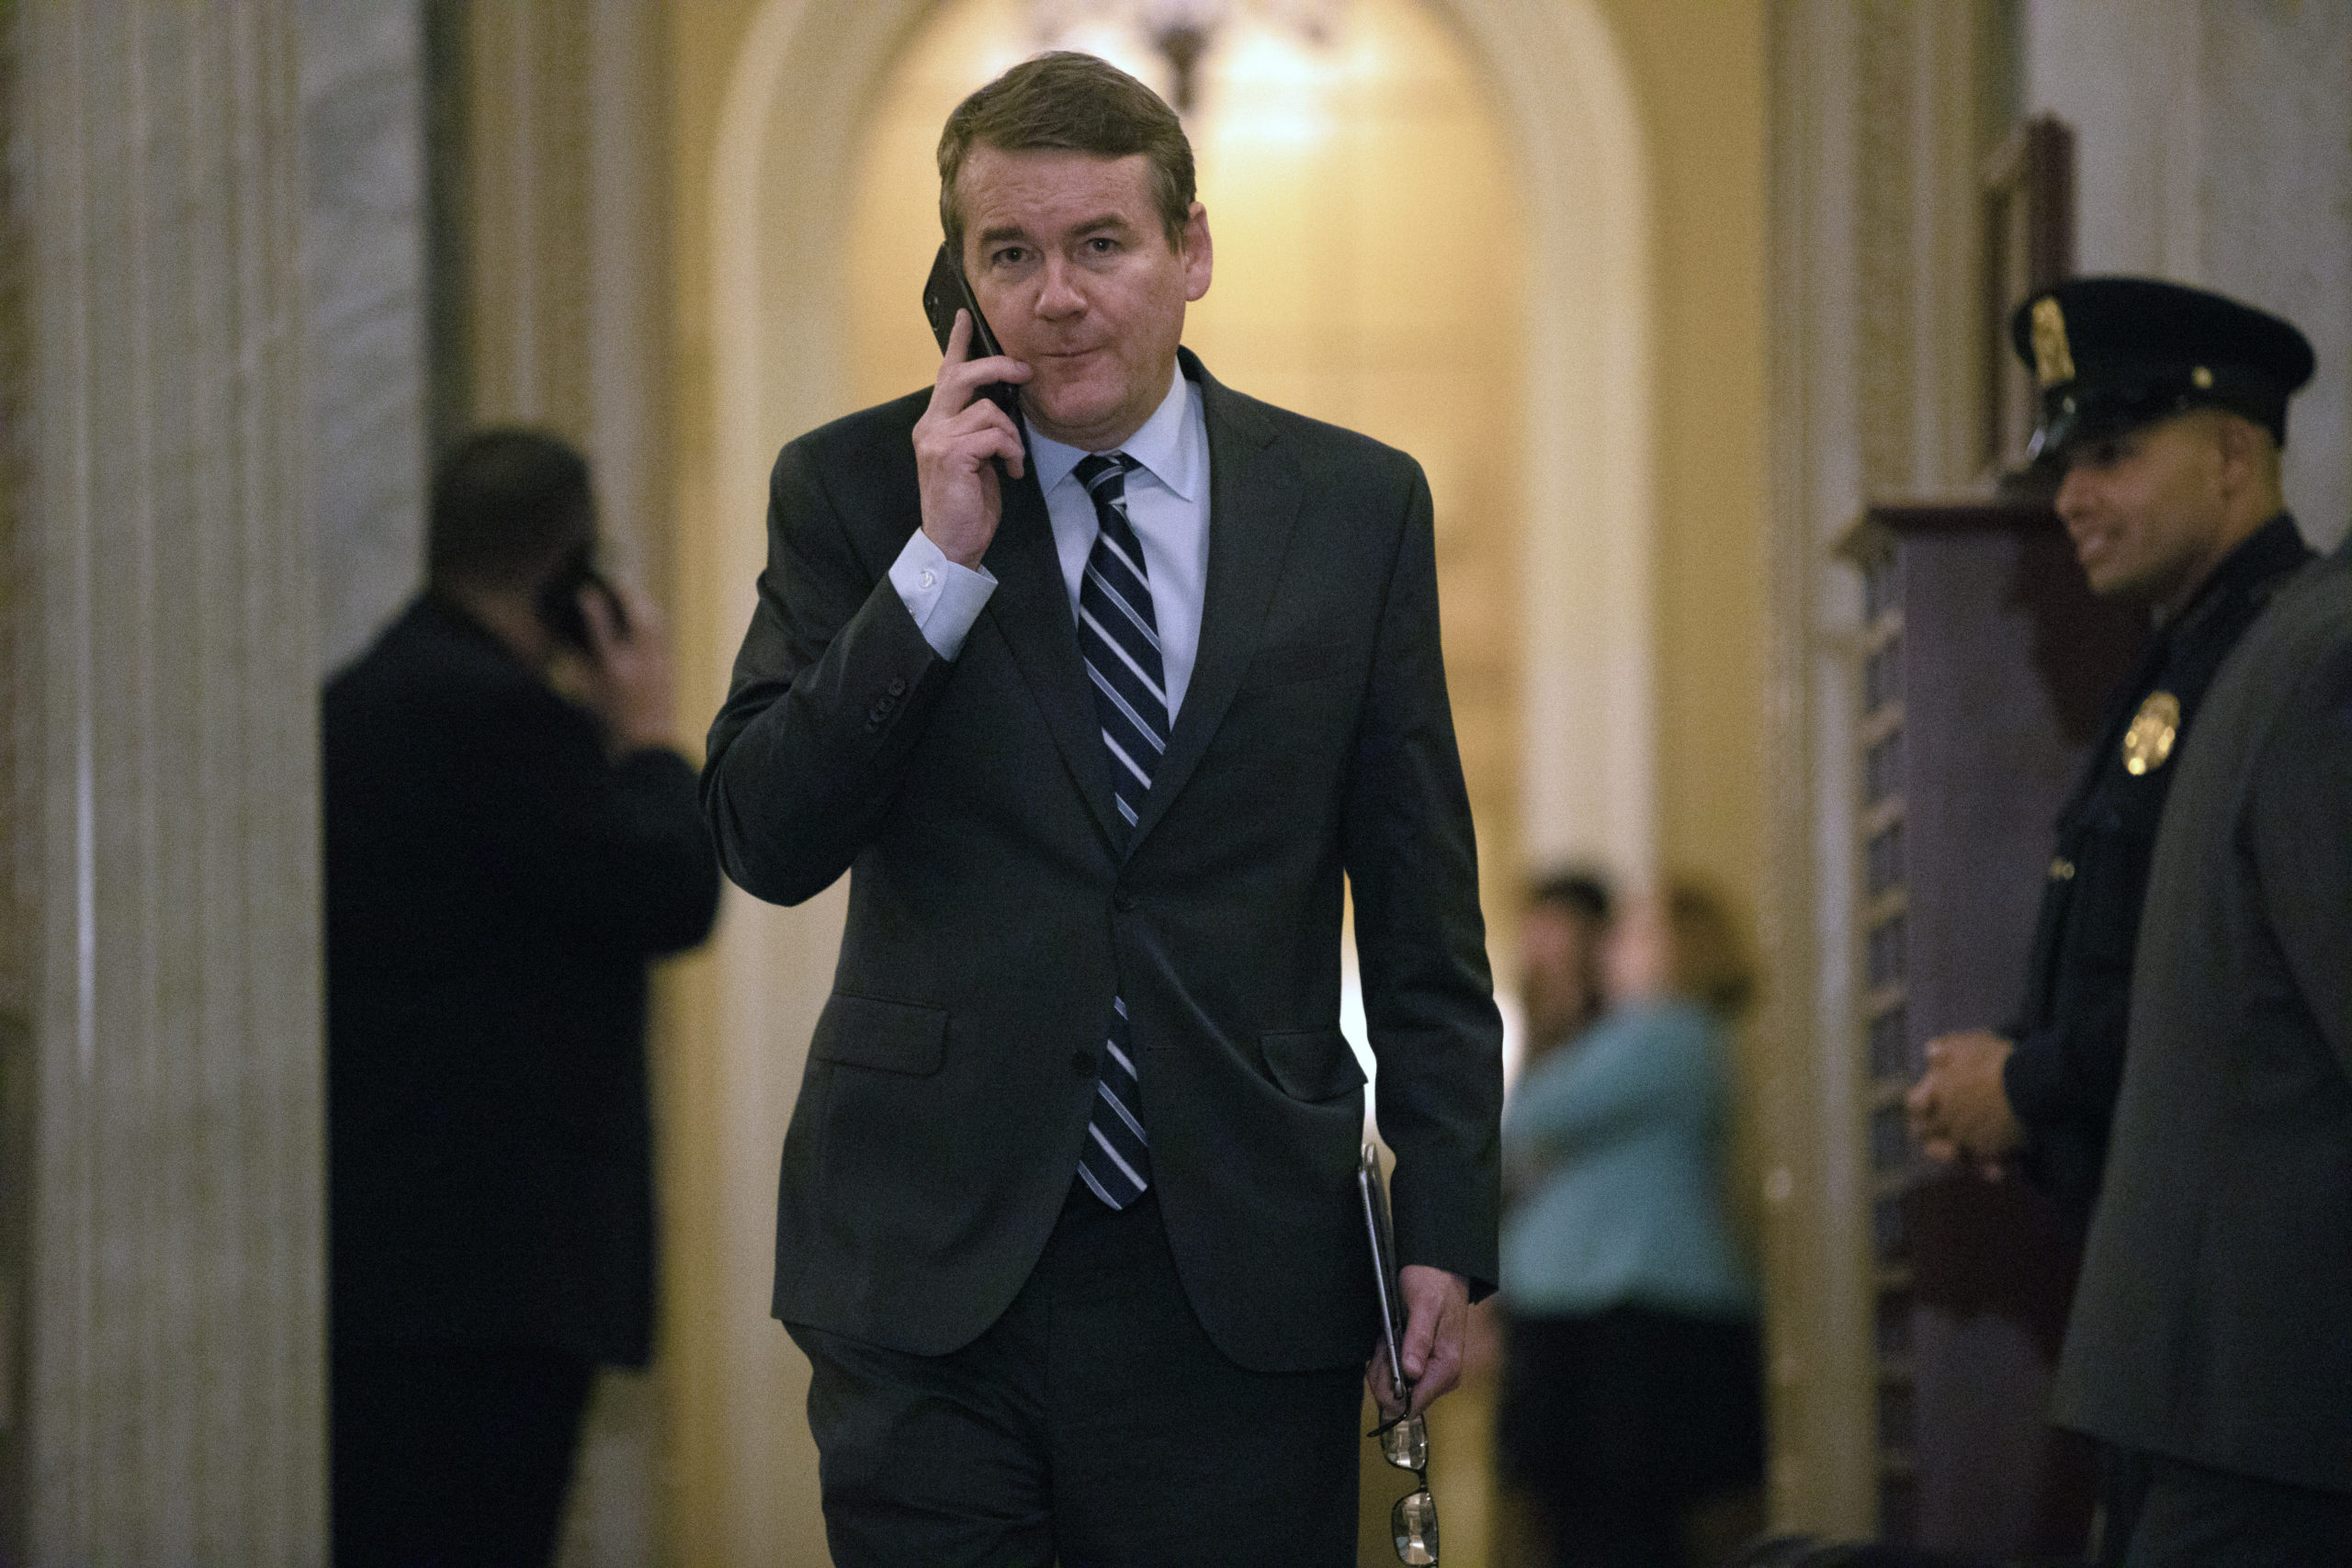 Sen. Michael Bennet, D-Colo., walks on Capitol Hill in Washington, Thursday, Jan. 30, 2020, as he returns to the Senate chamber after a break in the impeachment trial of President Donald Trump on charges of abuse of power and obstruction of Congress.